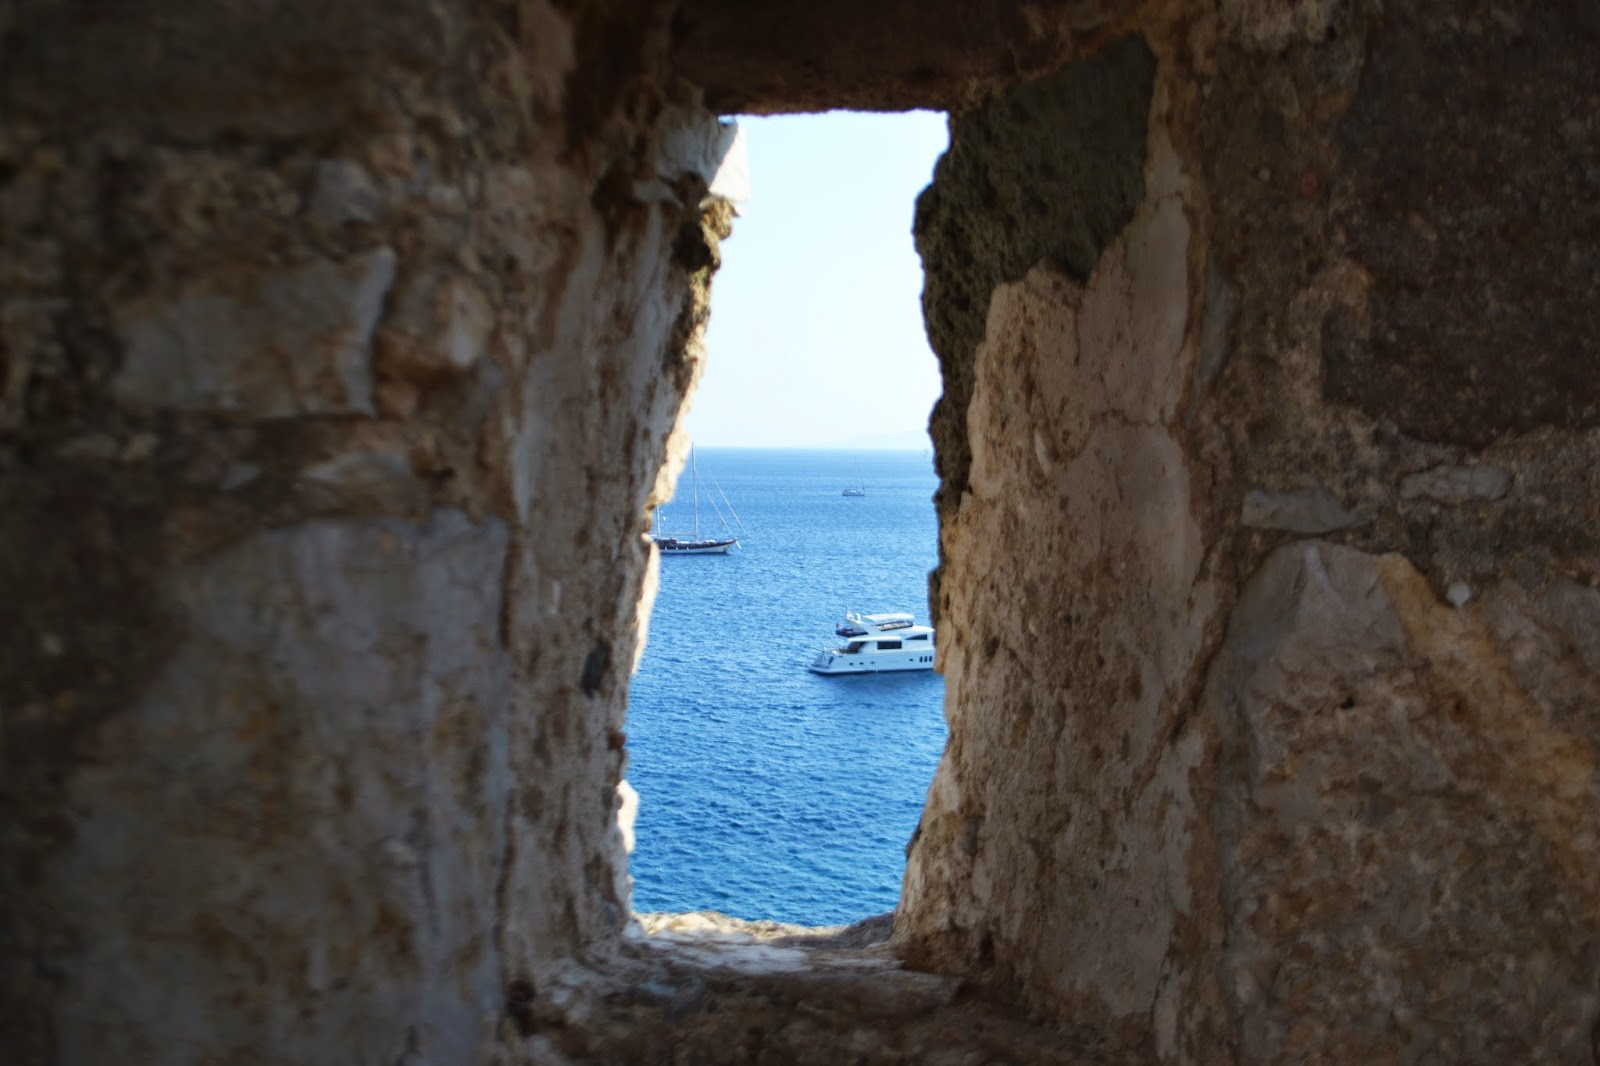 a small hole on the wall at Bodrum castle looks out over the sea where boats can be seen